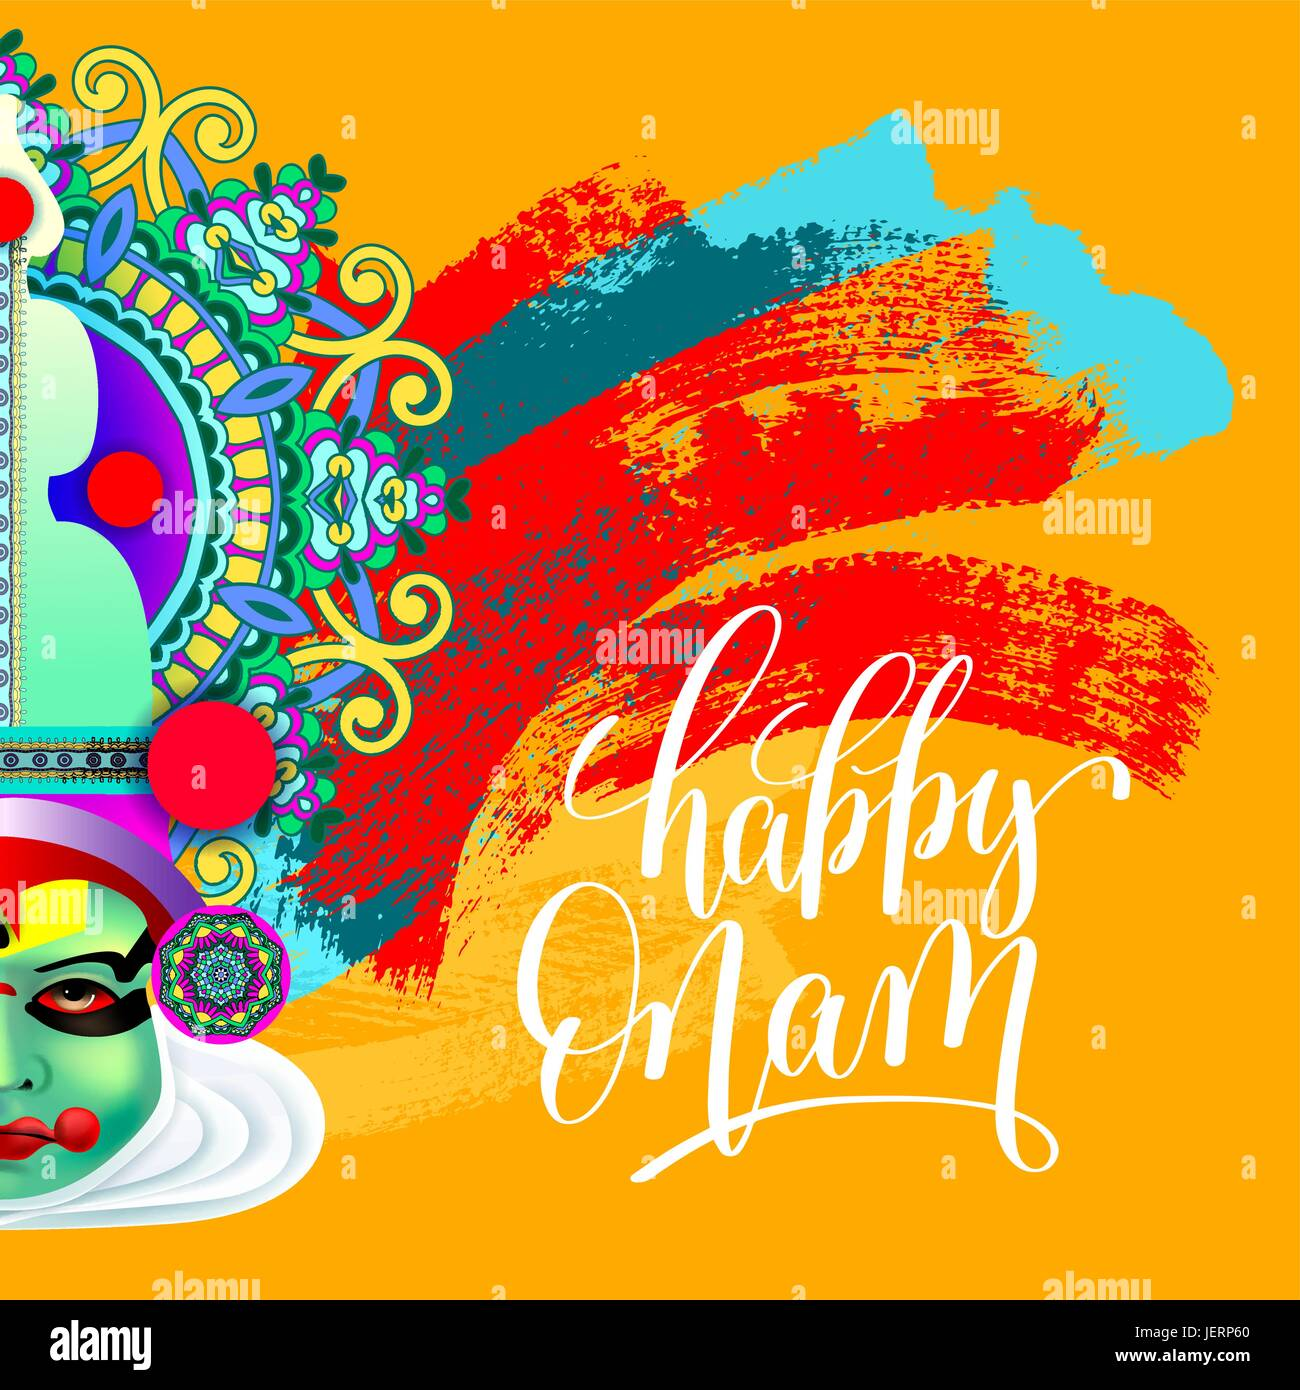 Happy Onam Greeting Card With Indian Kathakali Dancer Face Stock